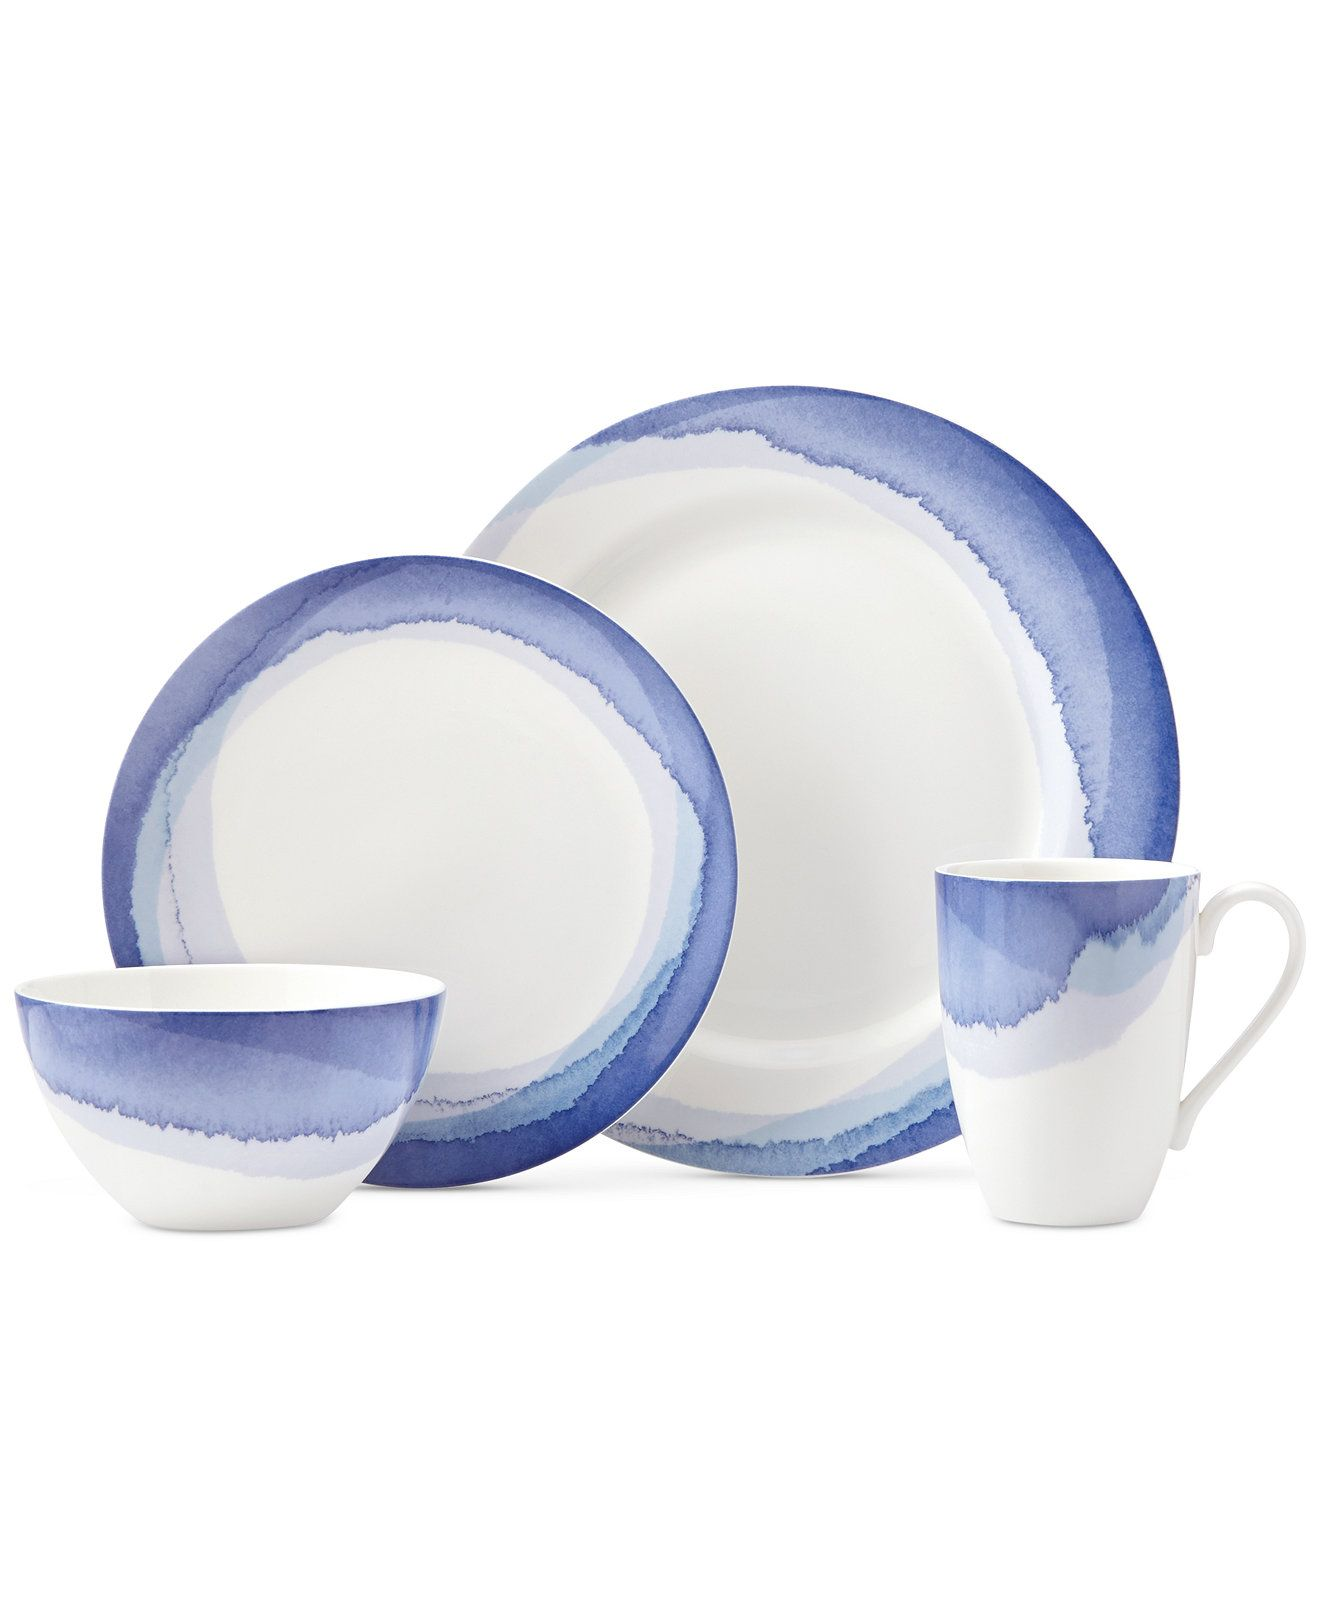 Lenox Dinnerware Indigo Watercolor Stripe Collection Created for Macyu0027s  sc 1 st  Pinterest & Lenox Dinnerware Indigo Watercolor Stripe Collection Created for ...